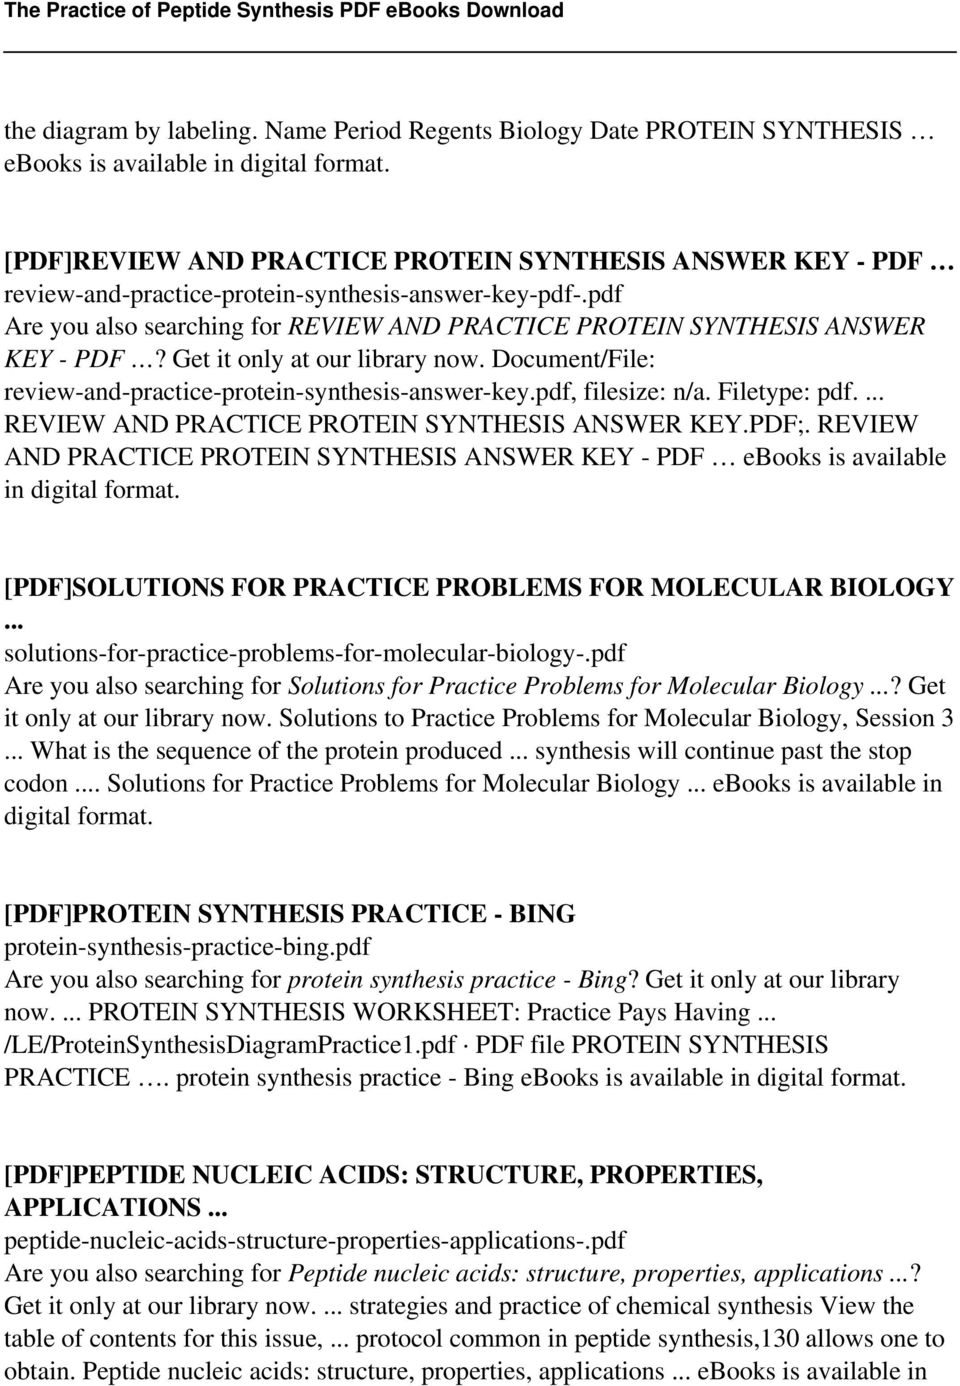 worksheet Protein Synthesis Worksheet Lesson Plans Inc 2007 the practice of peptide synthesis pdf filesize na filetype review